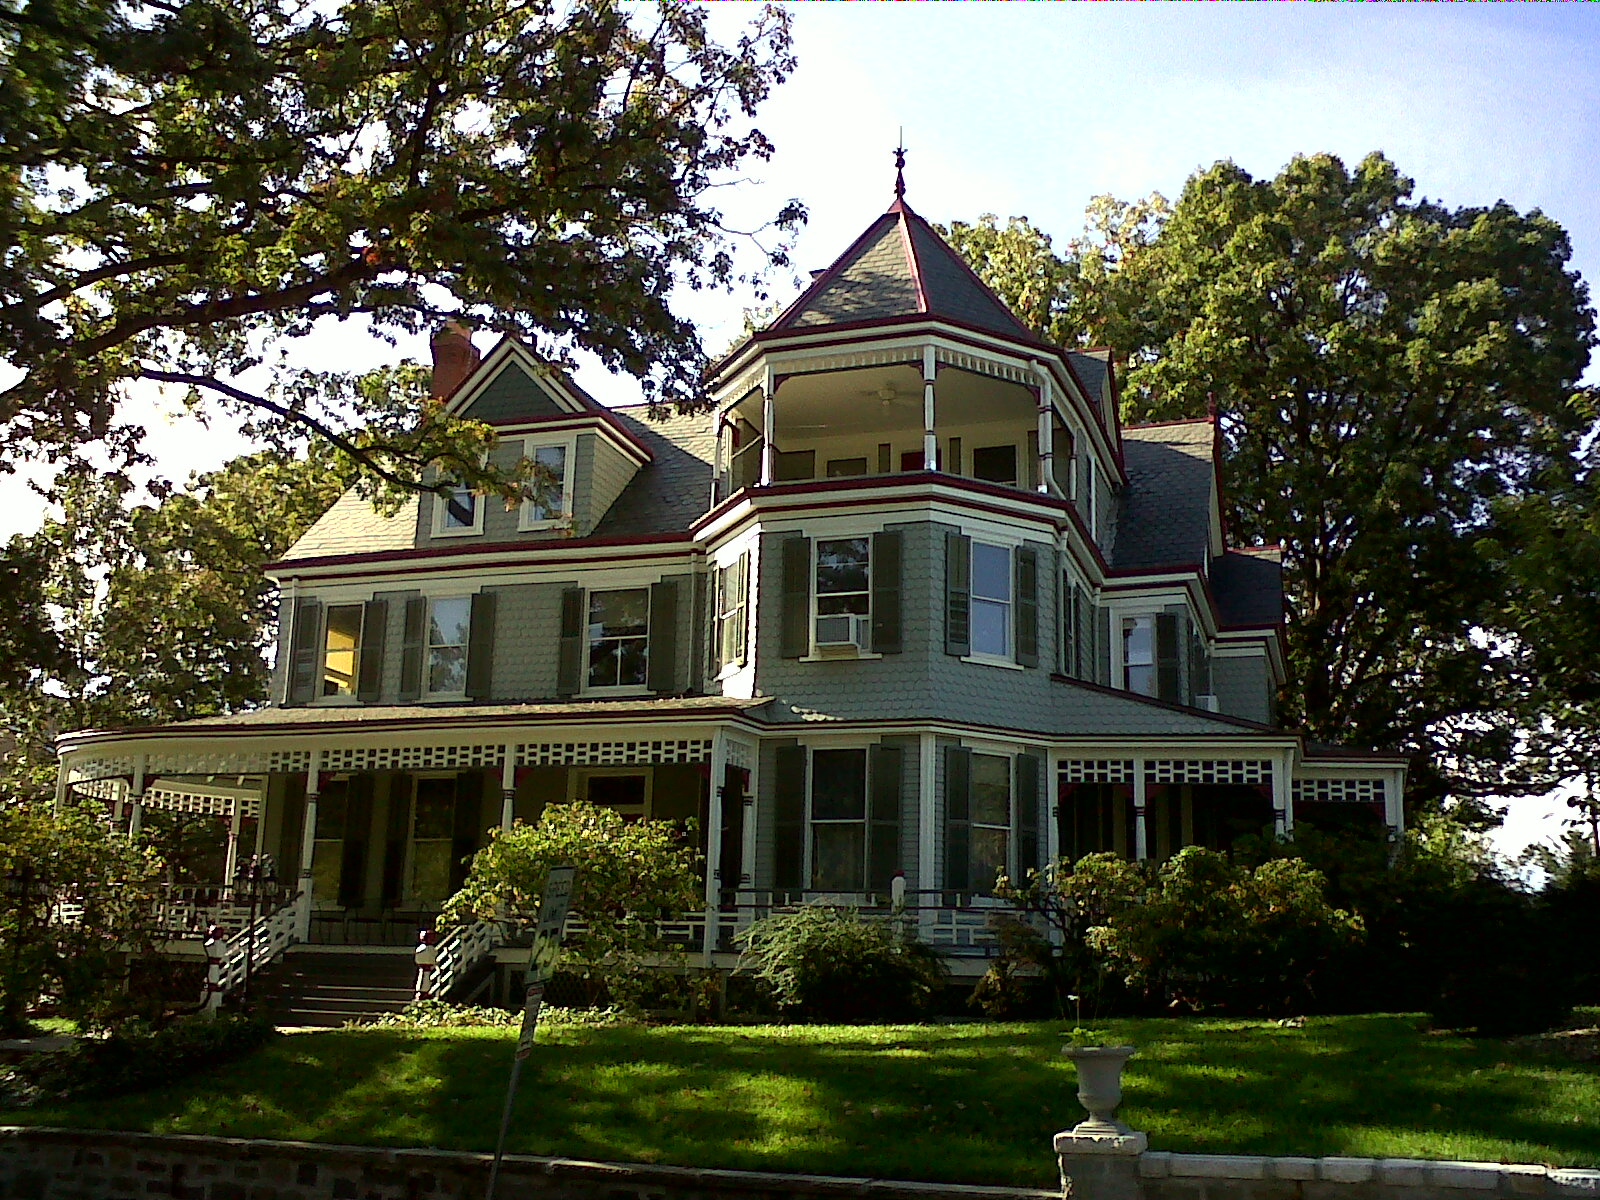 A view of the Cady-Lee mansion from 2011, by Farragutful on Wikimedia Commons (CC BY-SA 3.0)